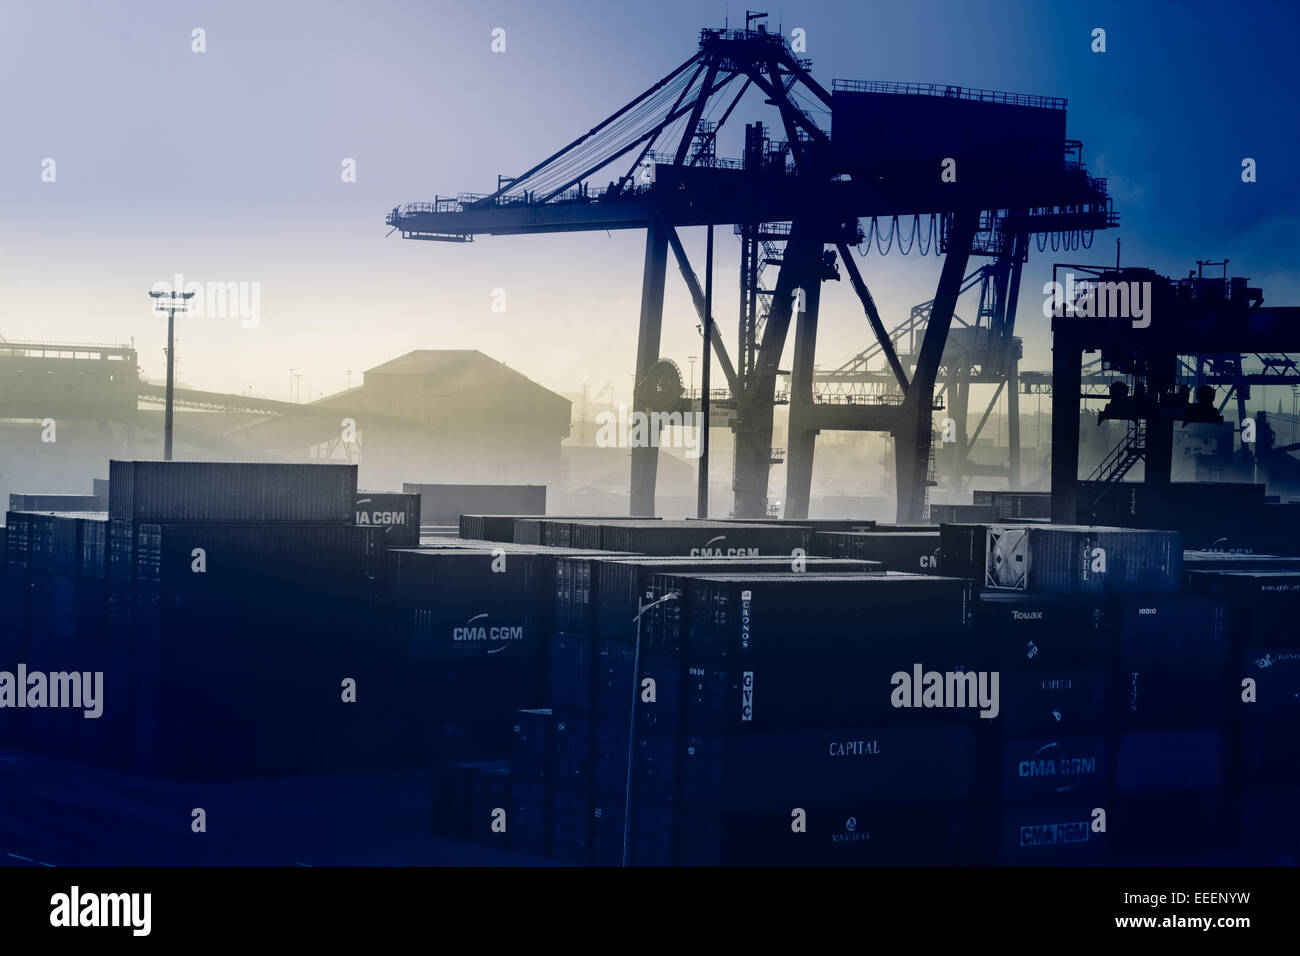 Blue tinted Casablanca dockyards. - Stock Image